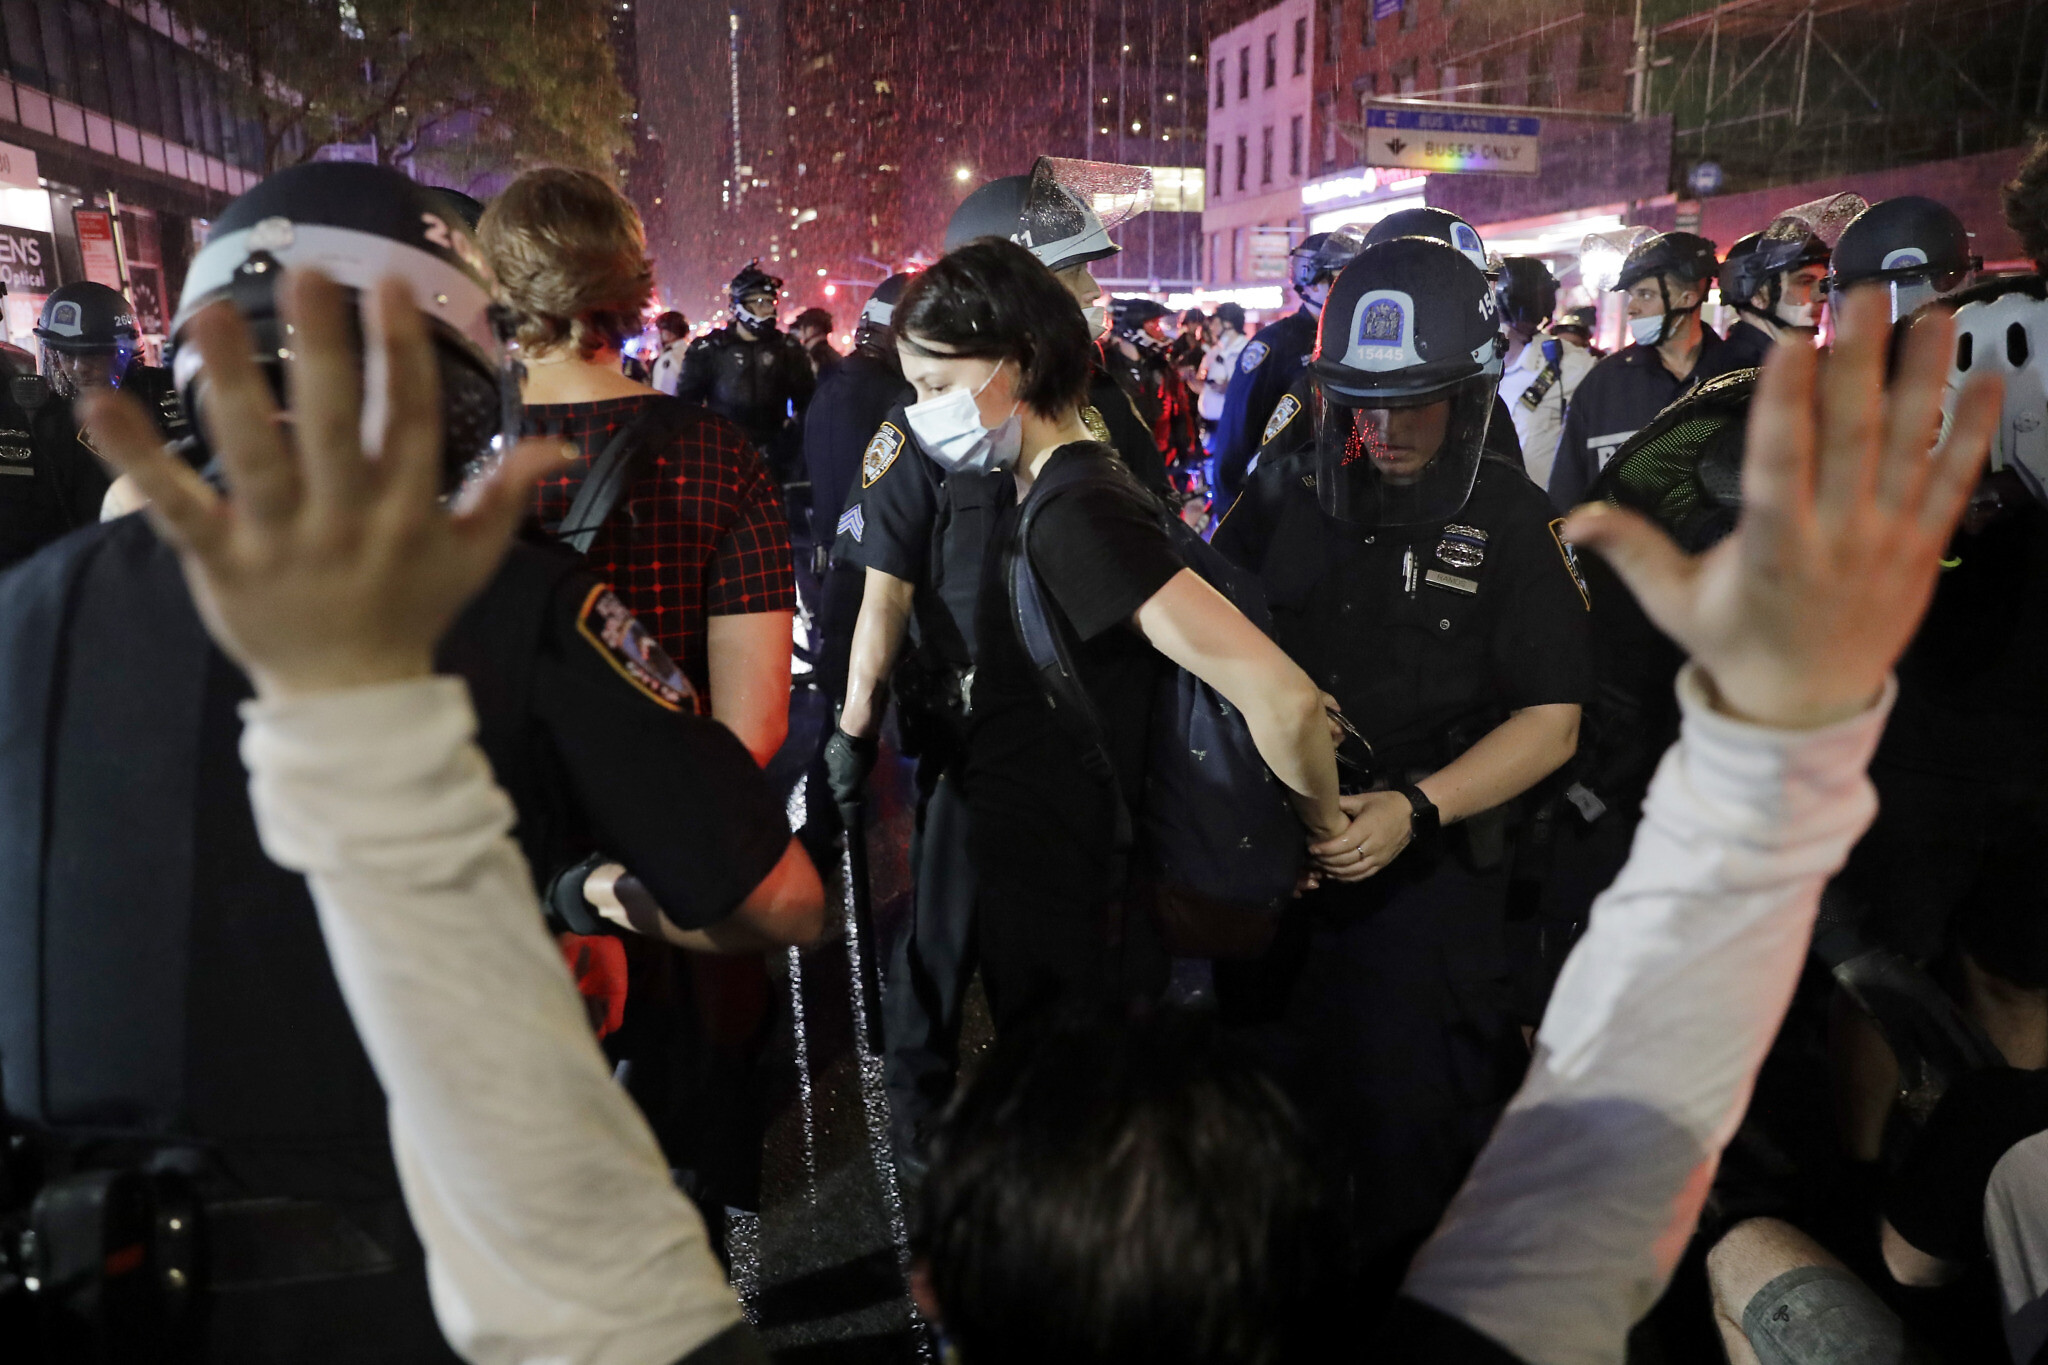 Curfews For Halloween 2020 Police crack down on George Floyd protests in New York, enforce